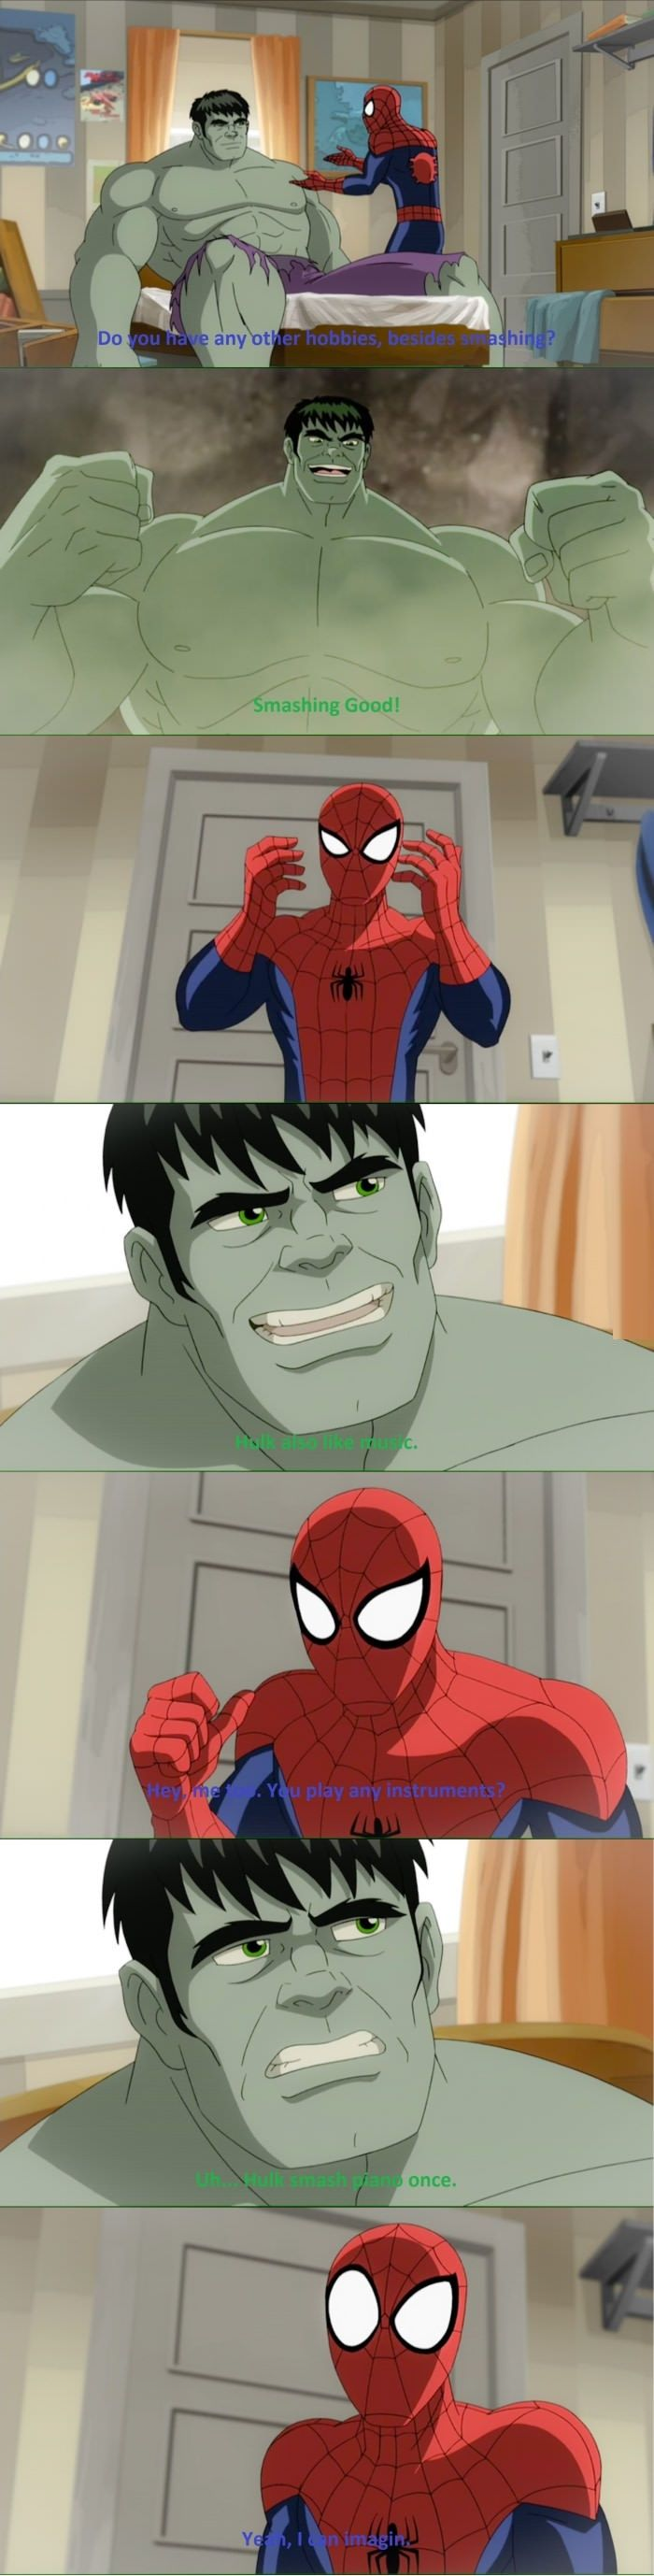 I kinda wish he had turned to Bruce around Spider-Man in this show, but Hulk was funny too though!